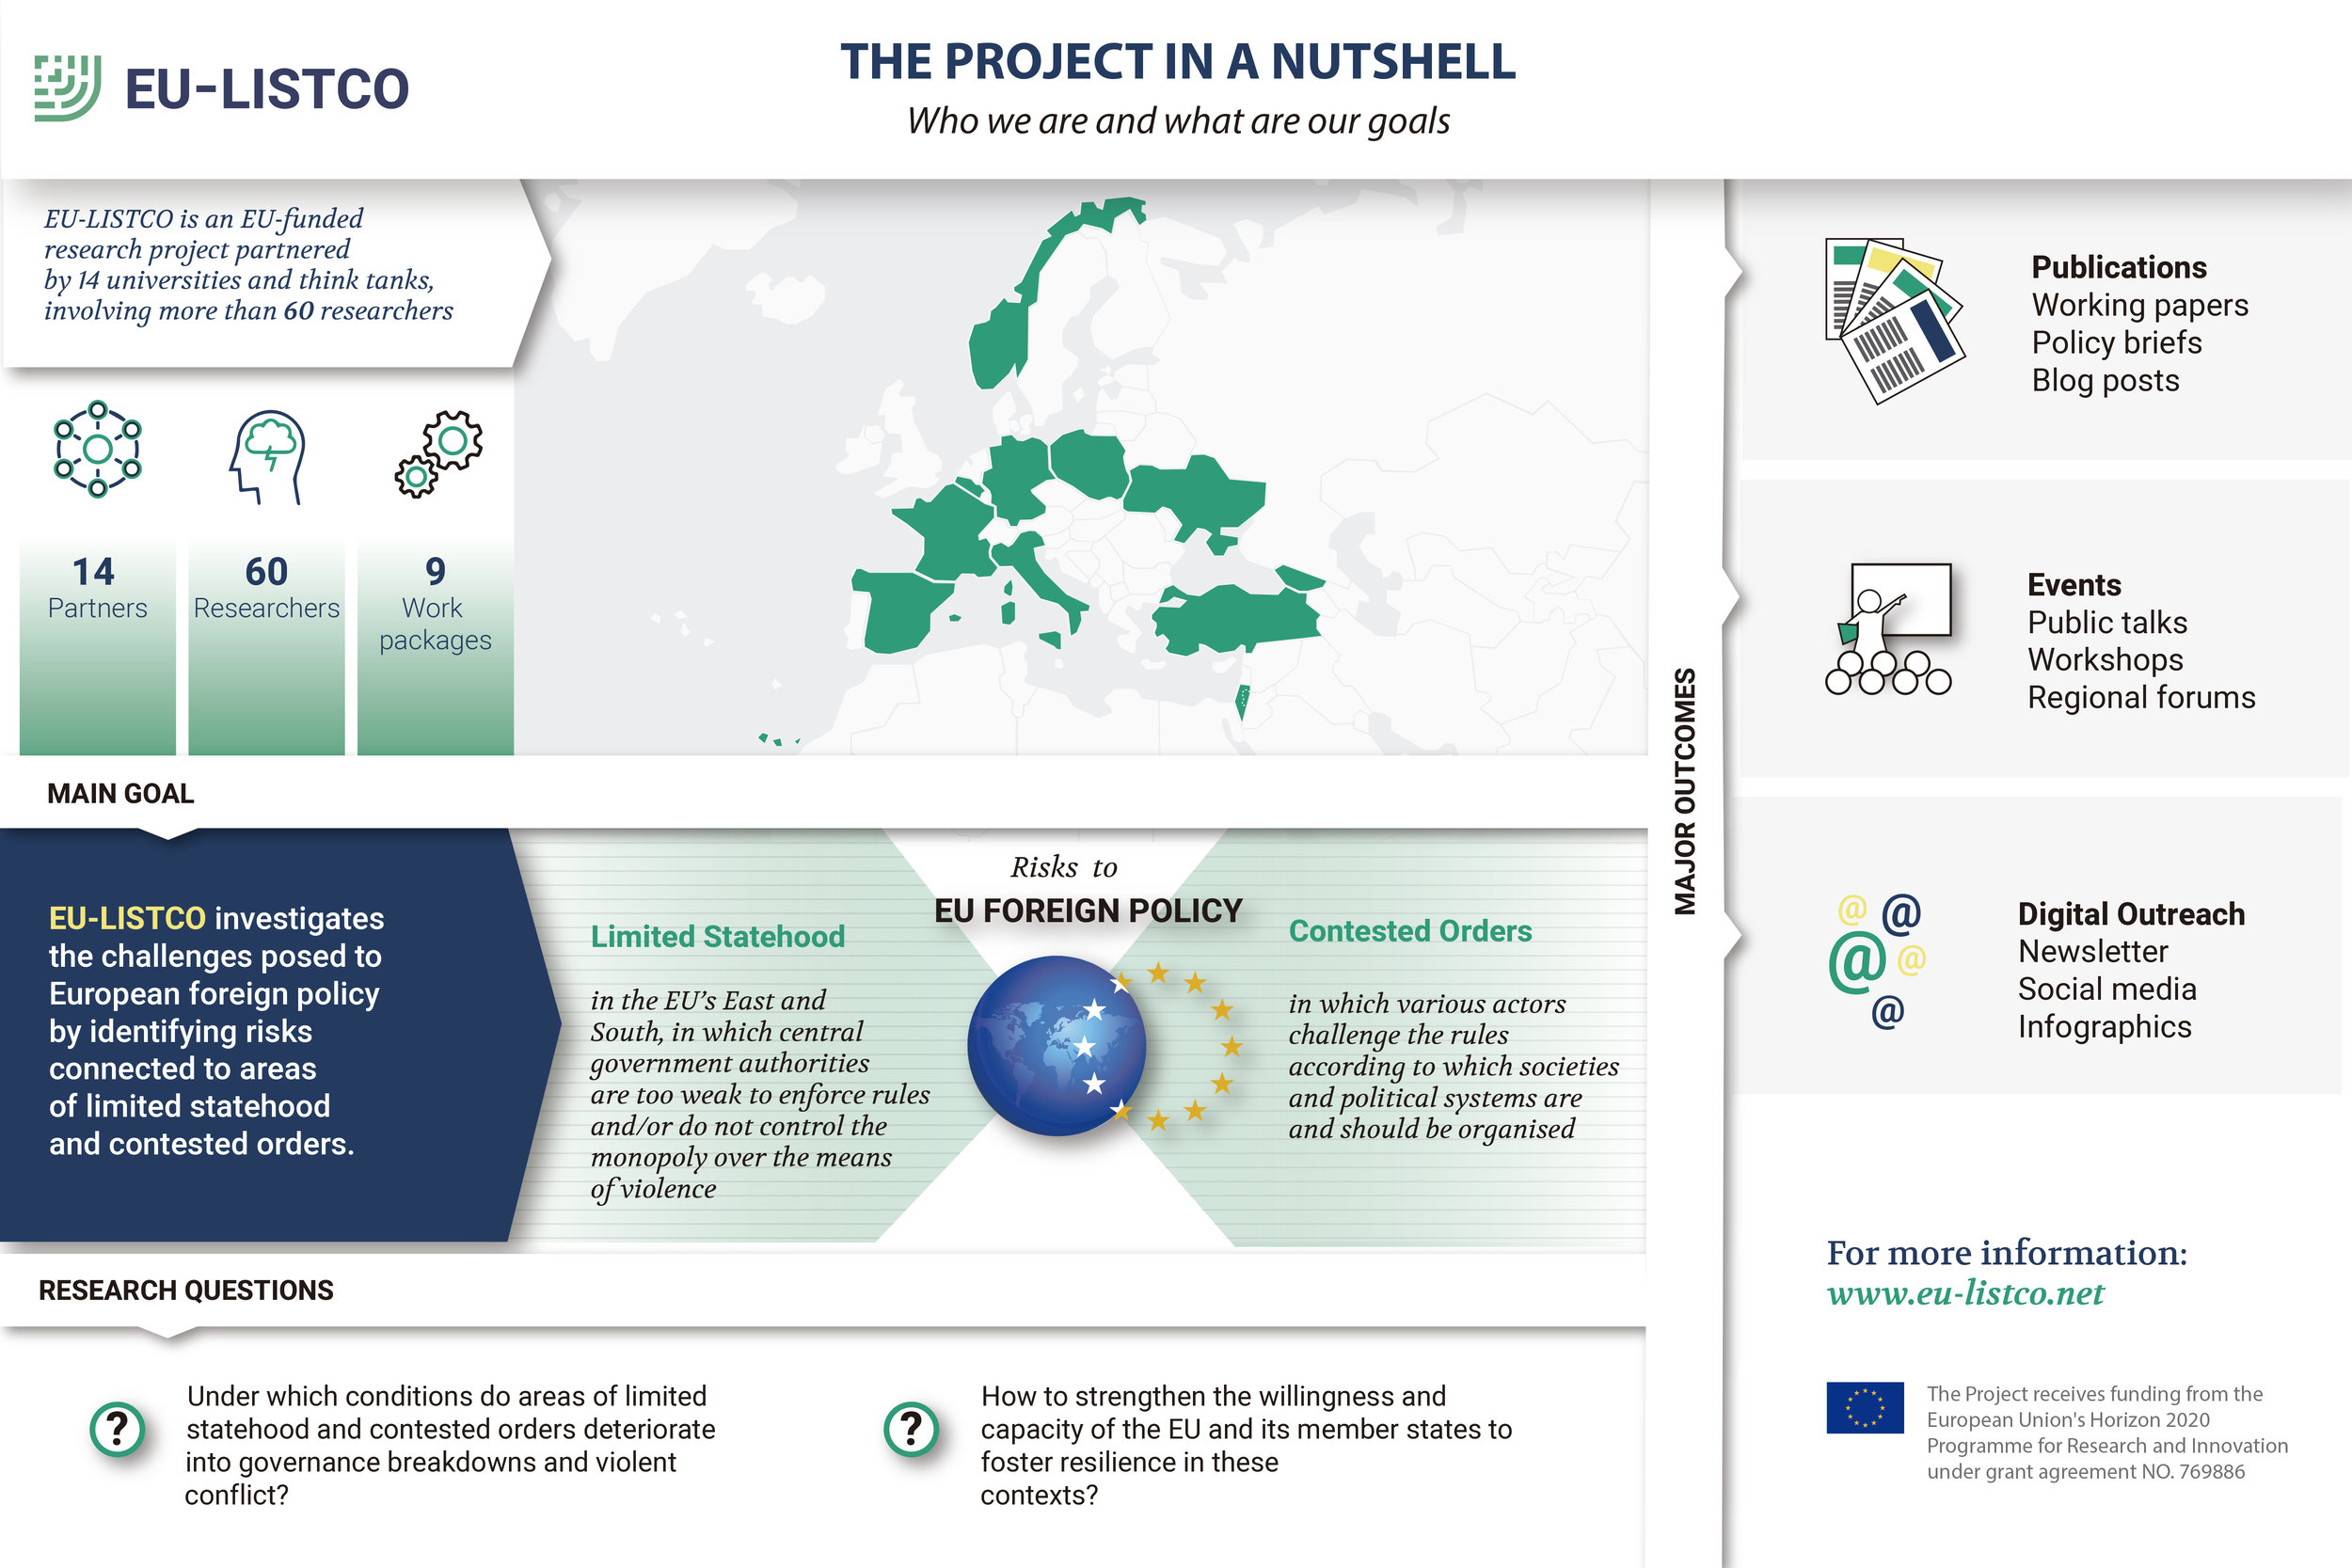 This infographic, produced by the Barcelona Centre for International Affairs (CIDOB), highlights EU-LISTCO's research goals, activities, and data about the project's team. To enlarge the image,    click here   .